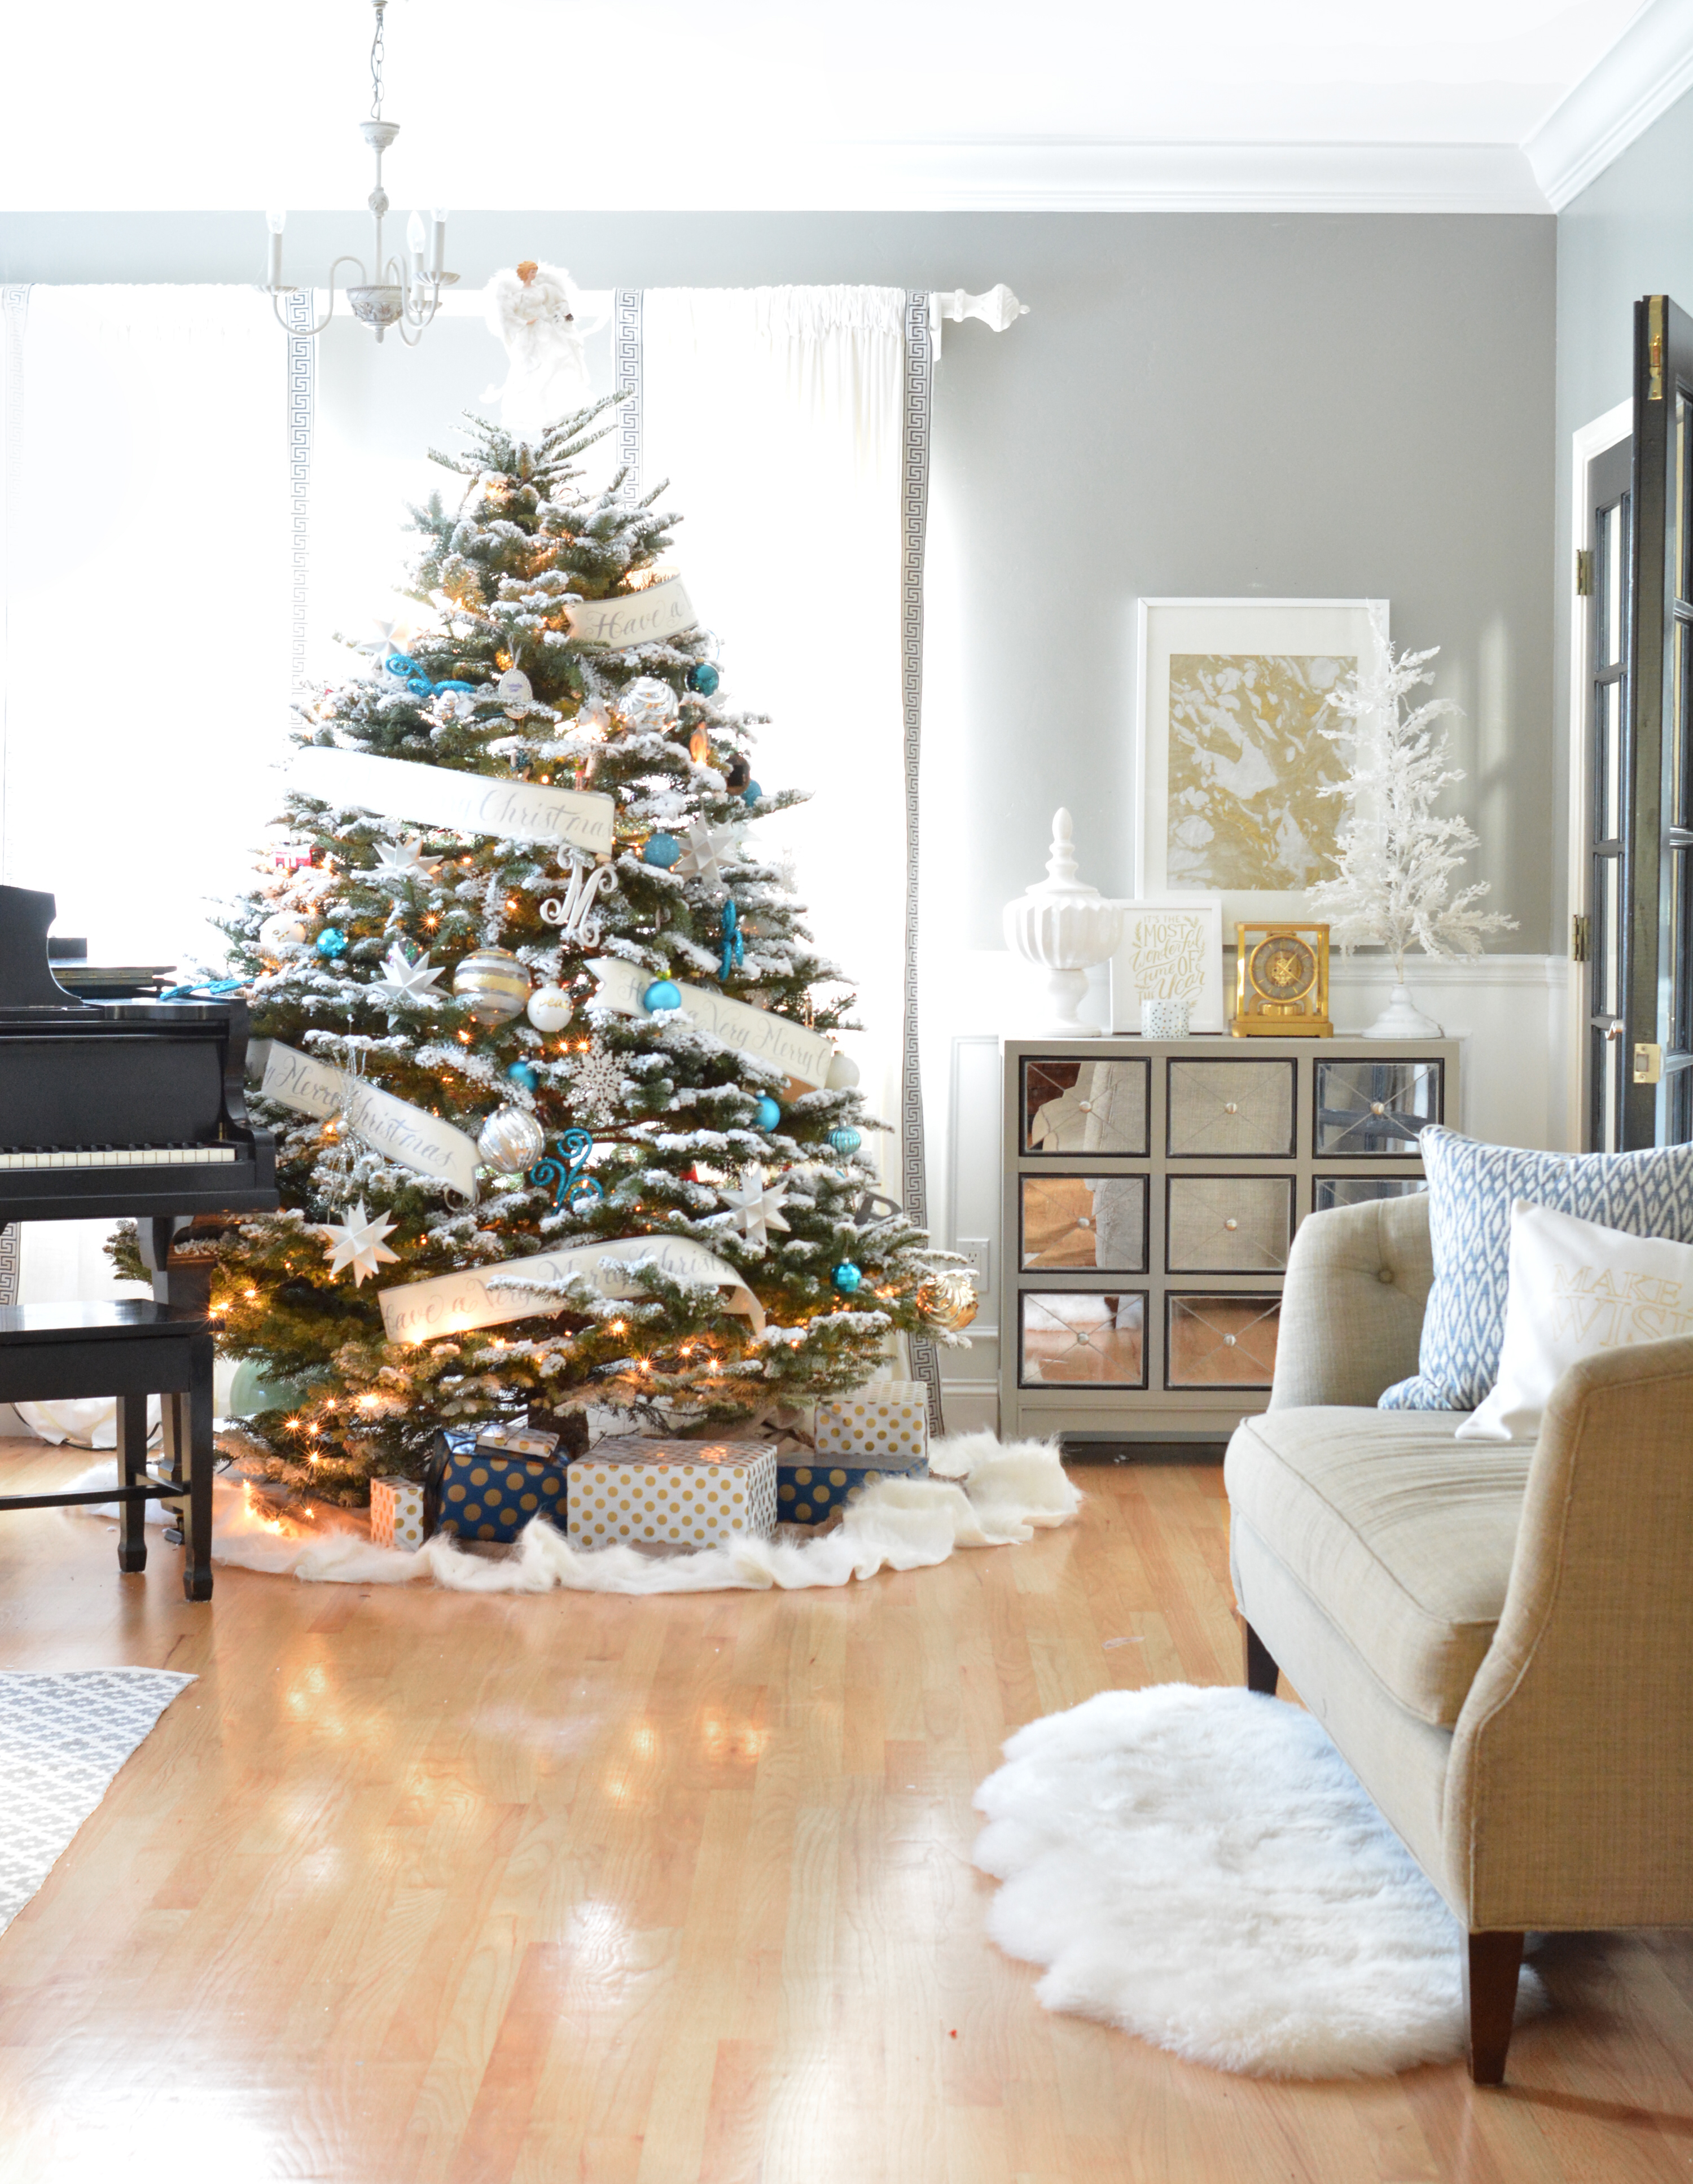 Calm for Christmas | Centsational Style